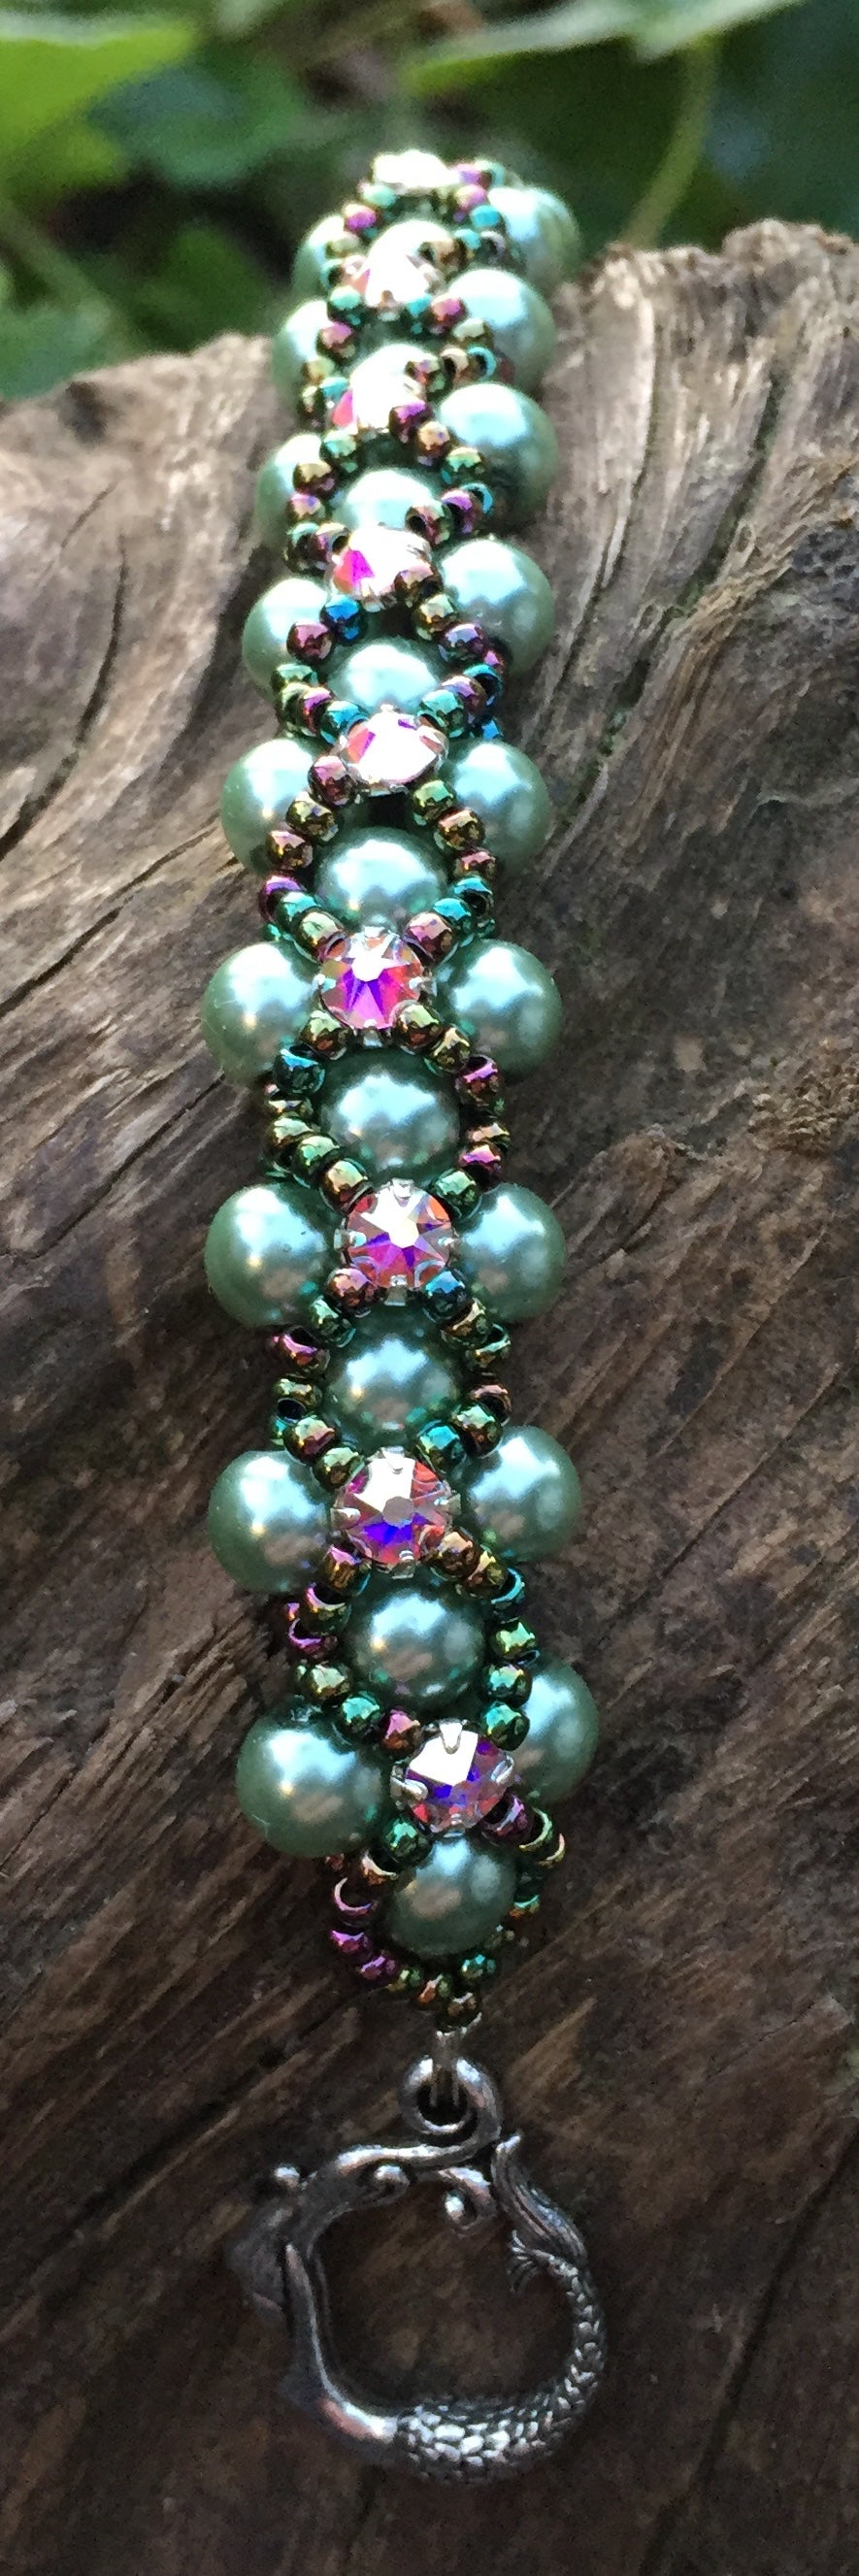 This Sage colored pearl bracelet is entwined with Metallic Iris Seed beads and Swarovski Crystal Montees and measures 7 1/2